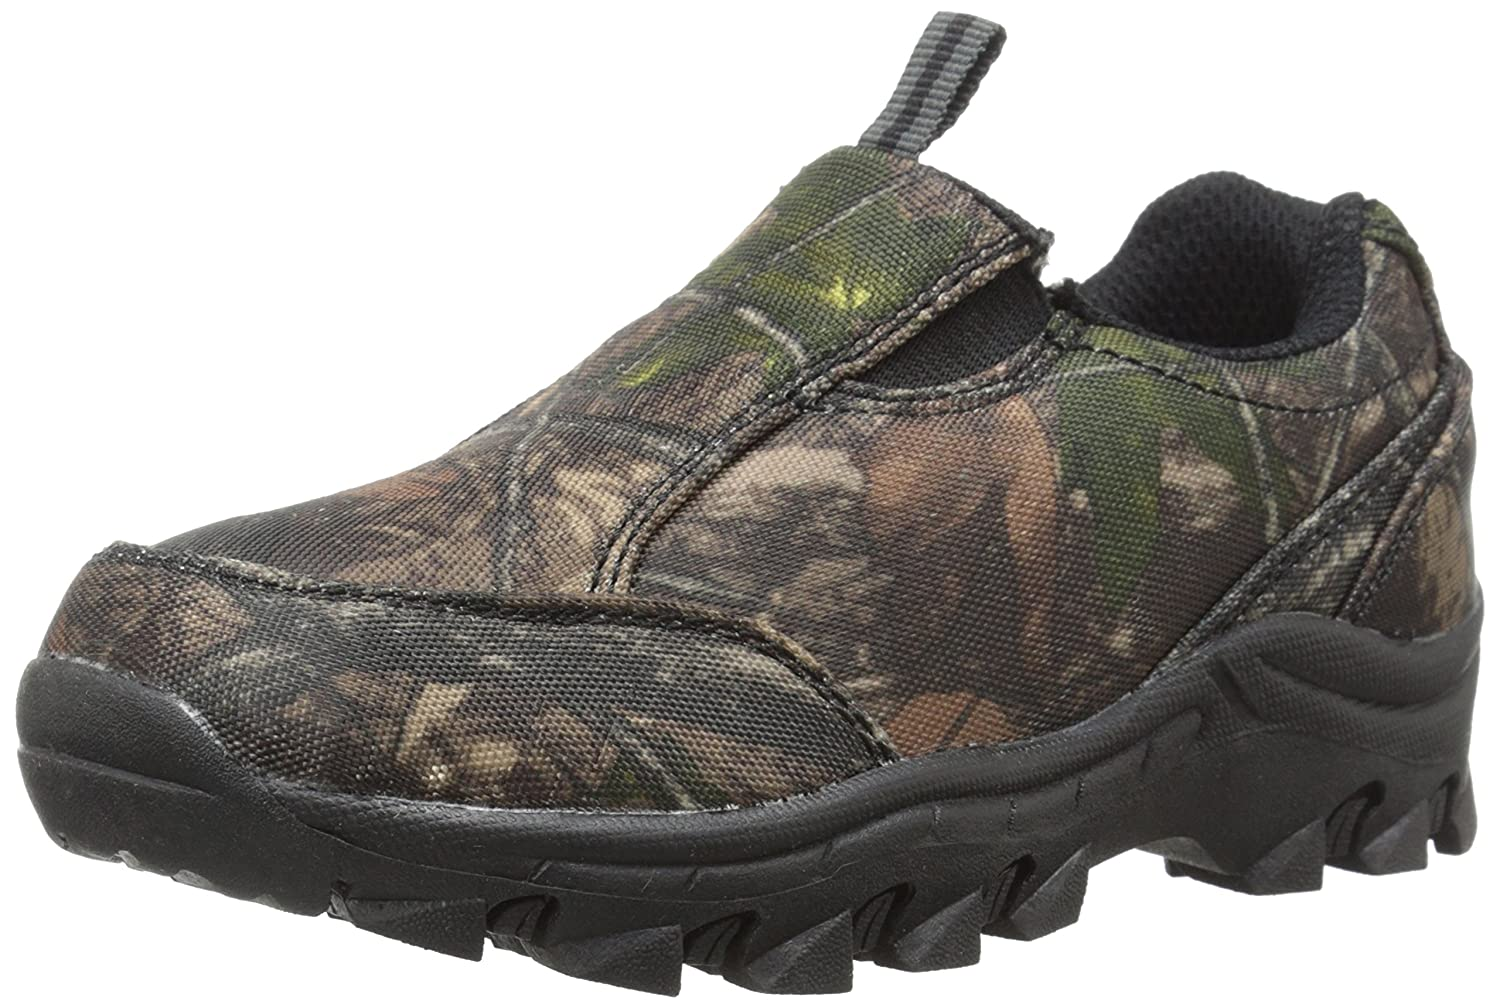 Northside Omak JR Outdoor Shoe (Little Kid/Big Kid) Brown Camo 2 M US Little Kid Omak JR. - K